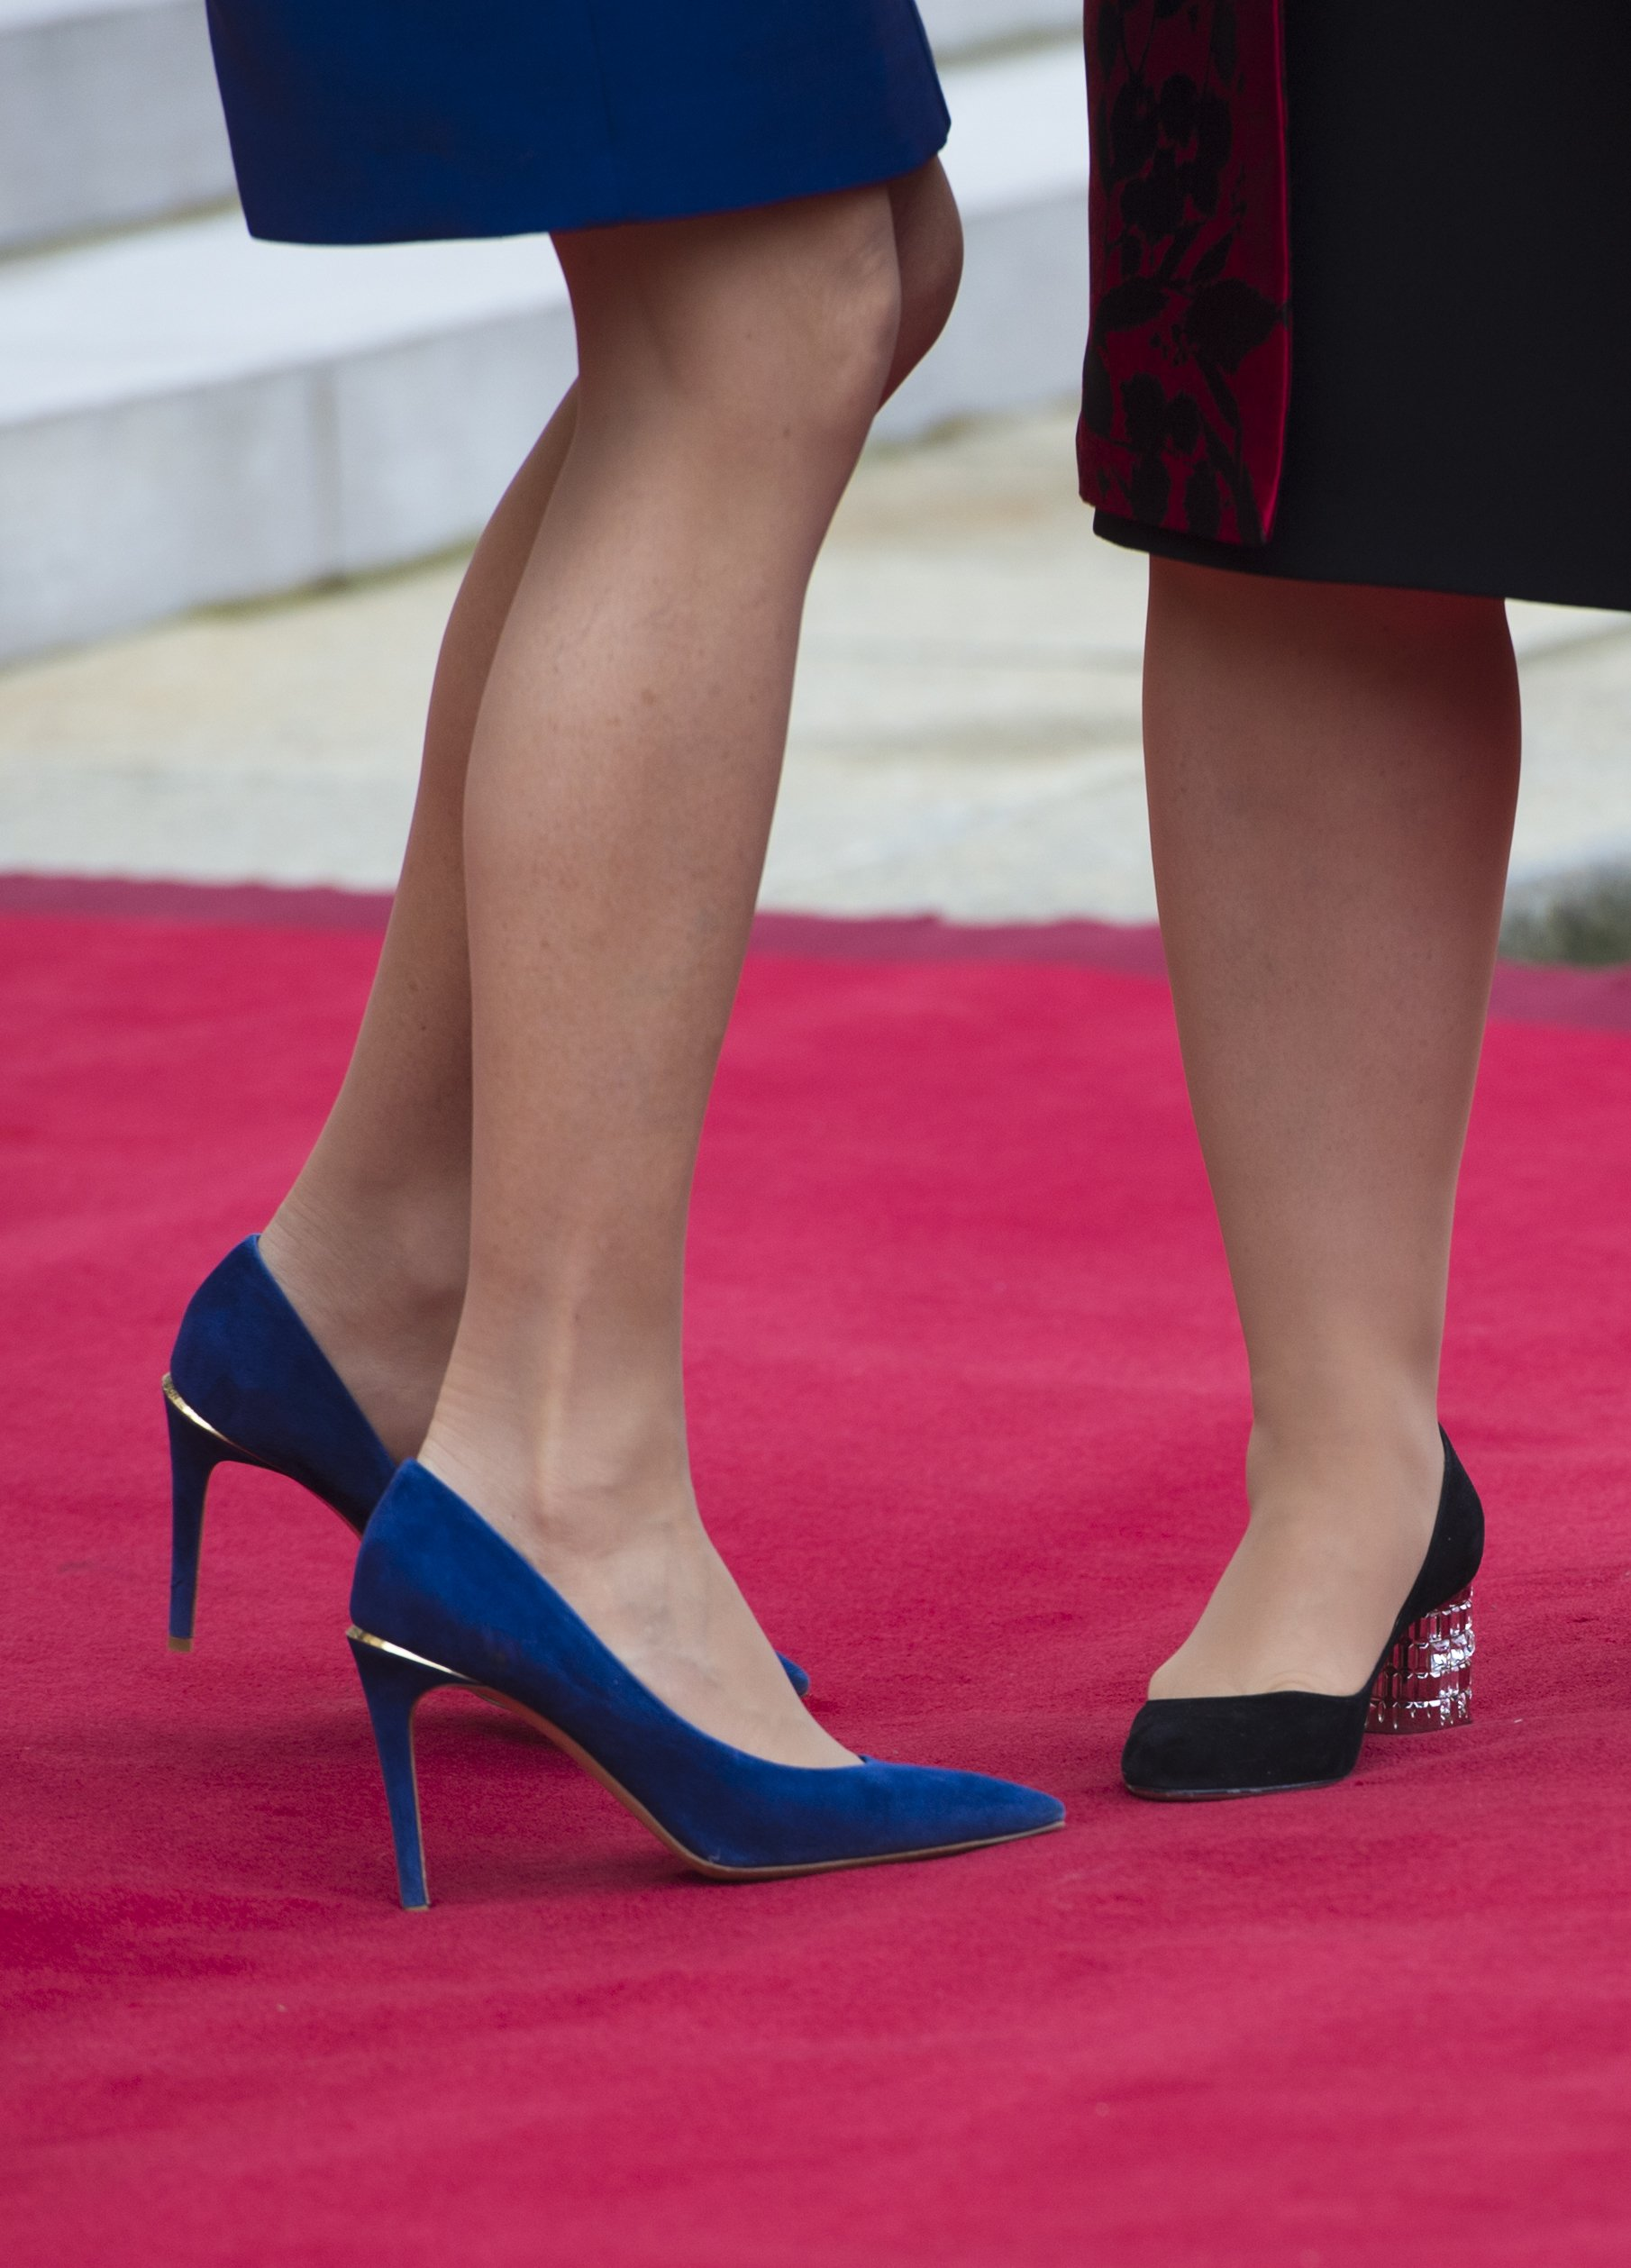 Brigitte Macron (Blue shoes) and Grand Duchess Maria Teresa of Luxembourg at Elysee Palace on March 19, 2018 in Paris, France., Image: 366375757, License: Rights-managed, Restrictions: , Model Release: no, Credit line: Profimedia, Abaca